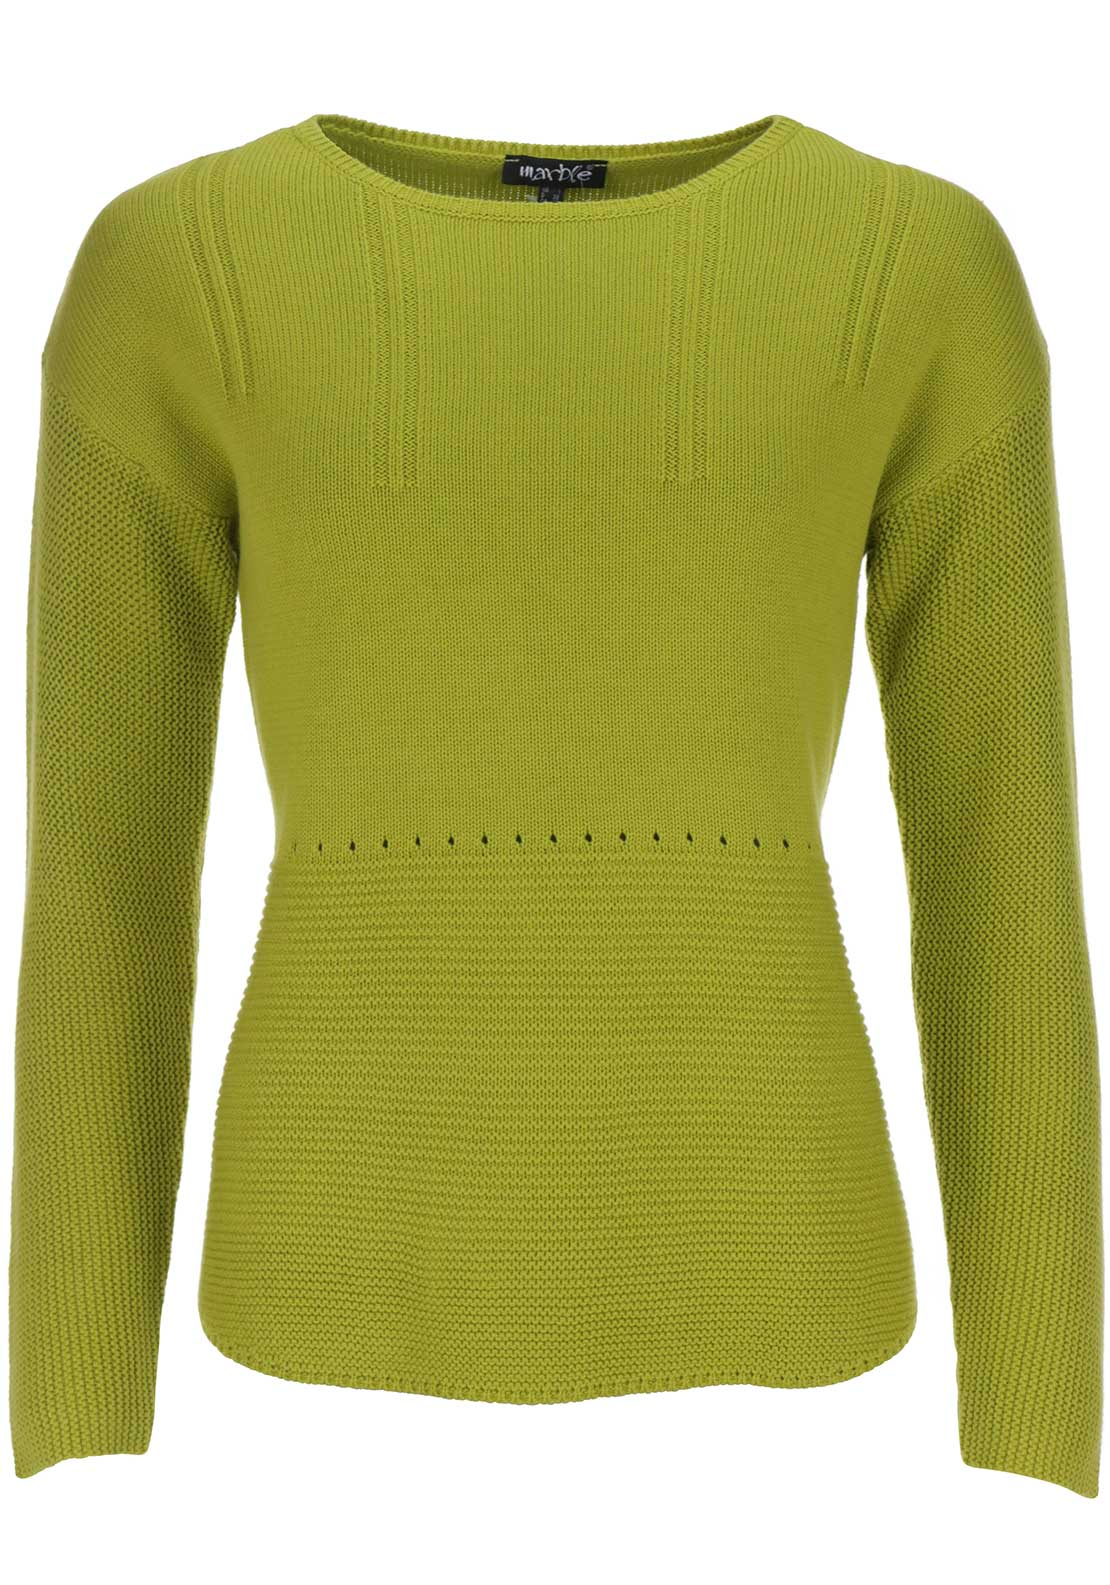 Marble Contrast Knit Cotton Blend Sweater Jumper, Lime Green